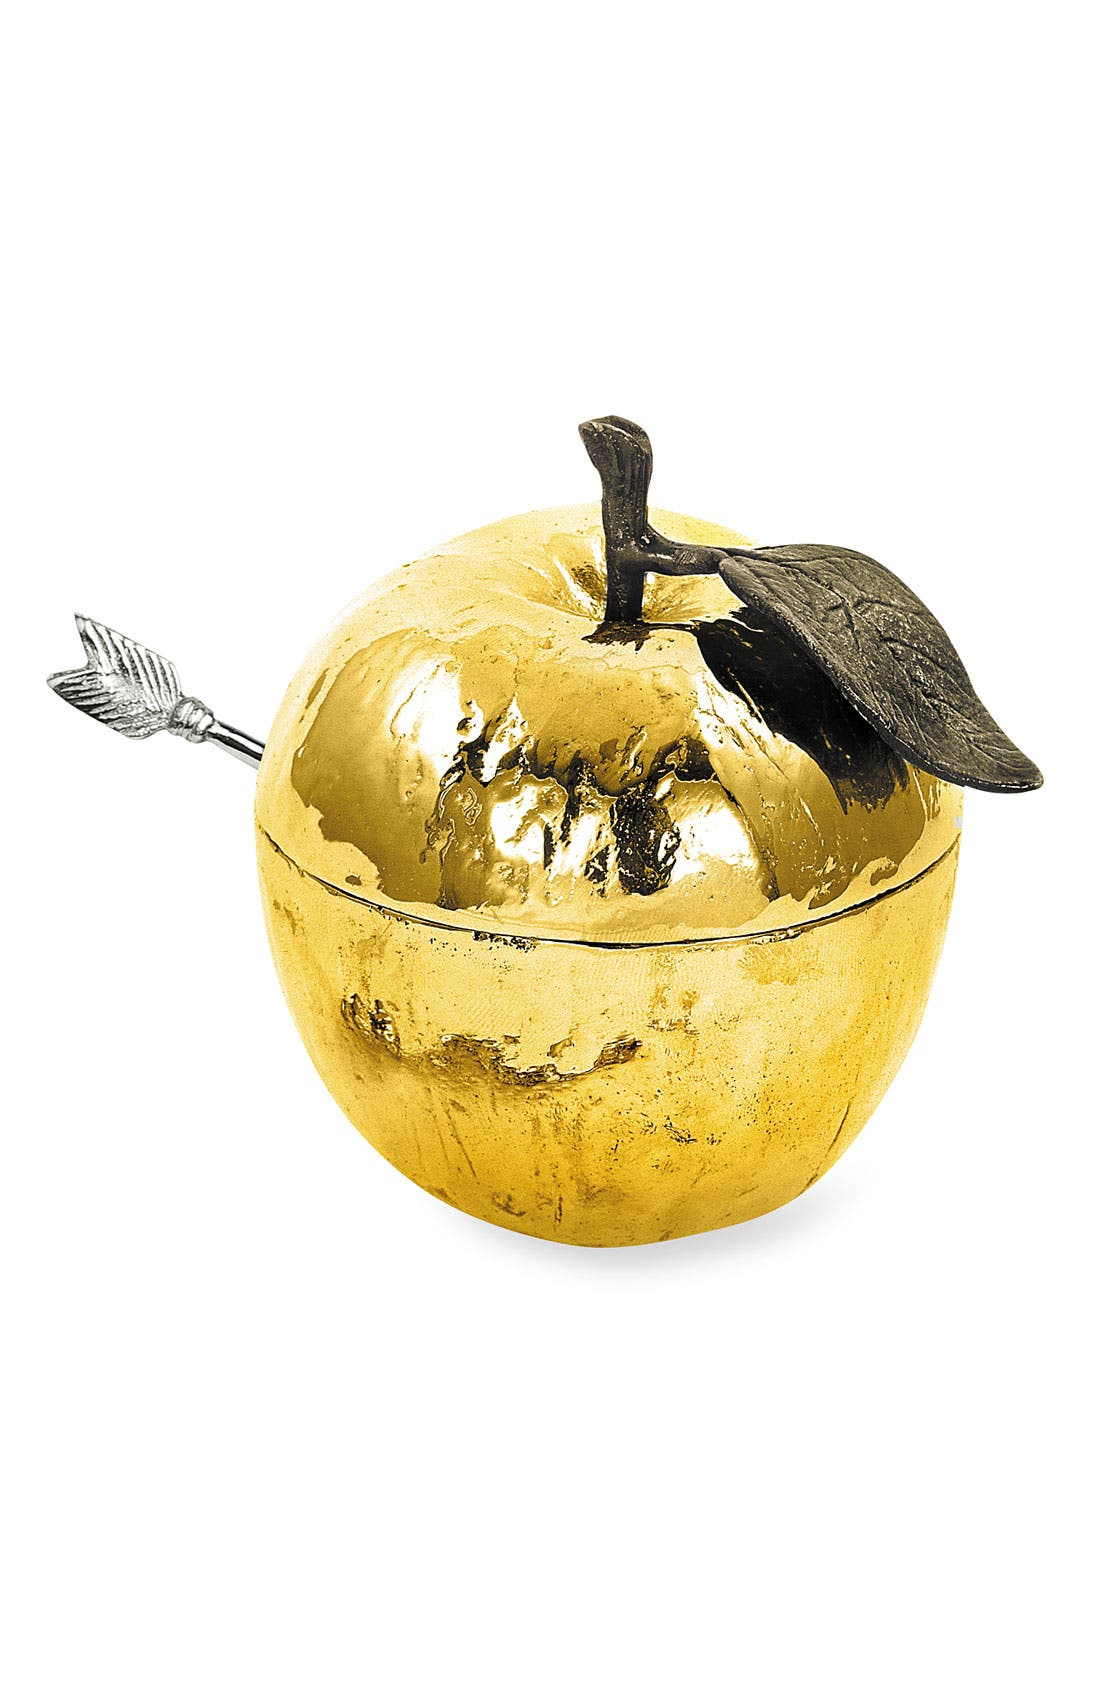 Alternate Image 1 Selected - Michael Aram 'Apple' Honey Pot with Spoon